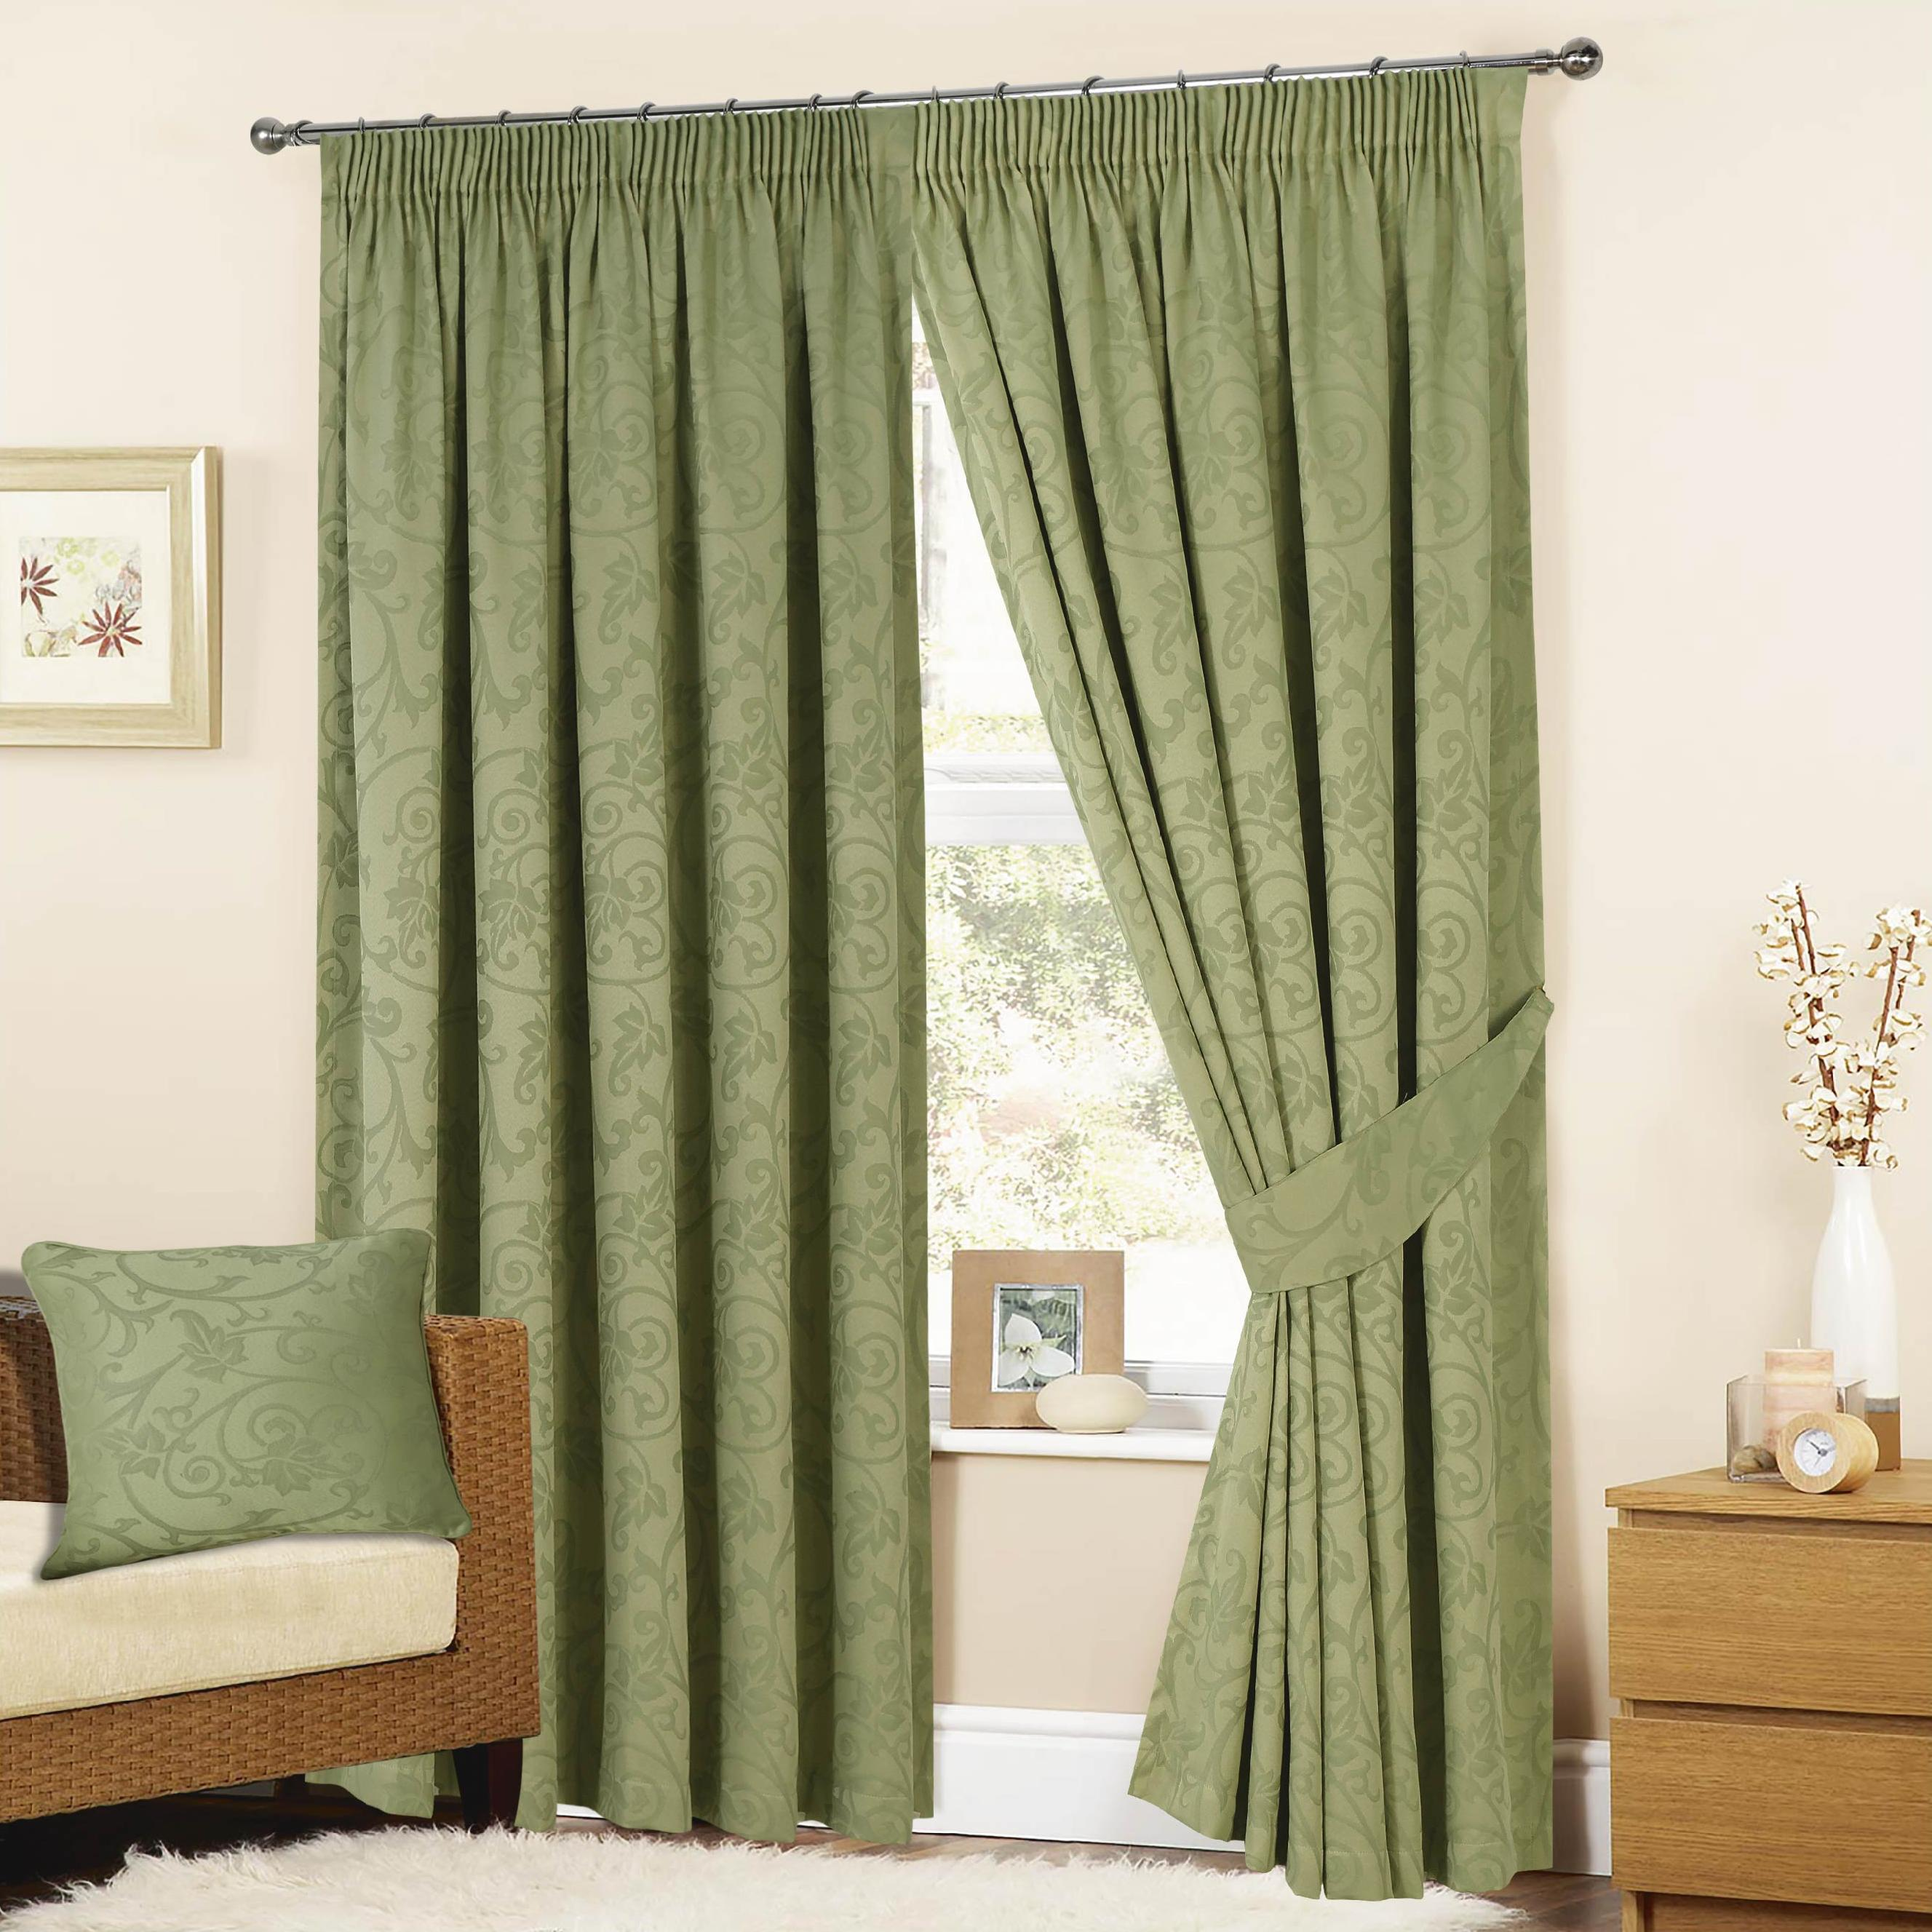 Turin Jacquard Lined Pencil Pleat Curtains Sage Green (tie